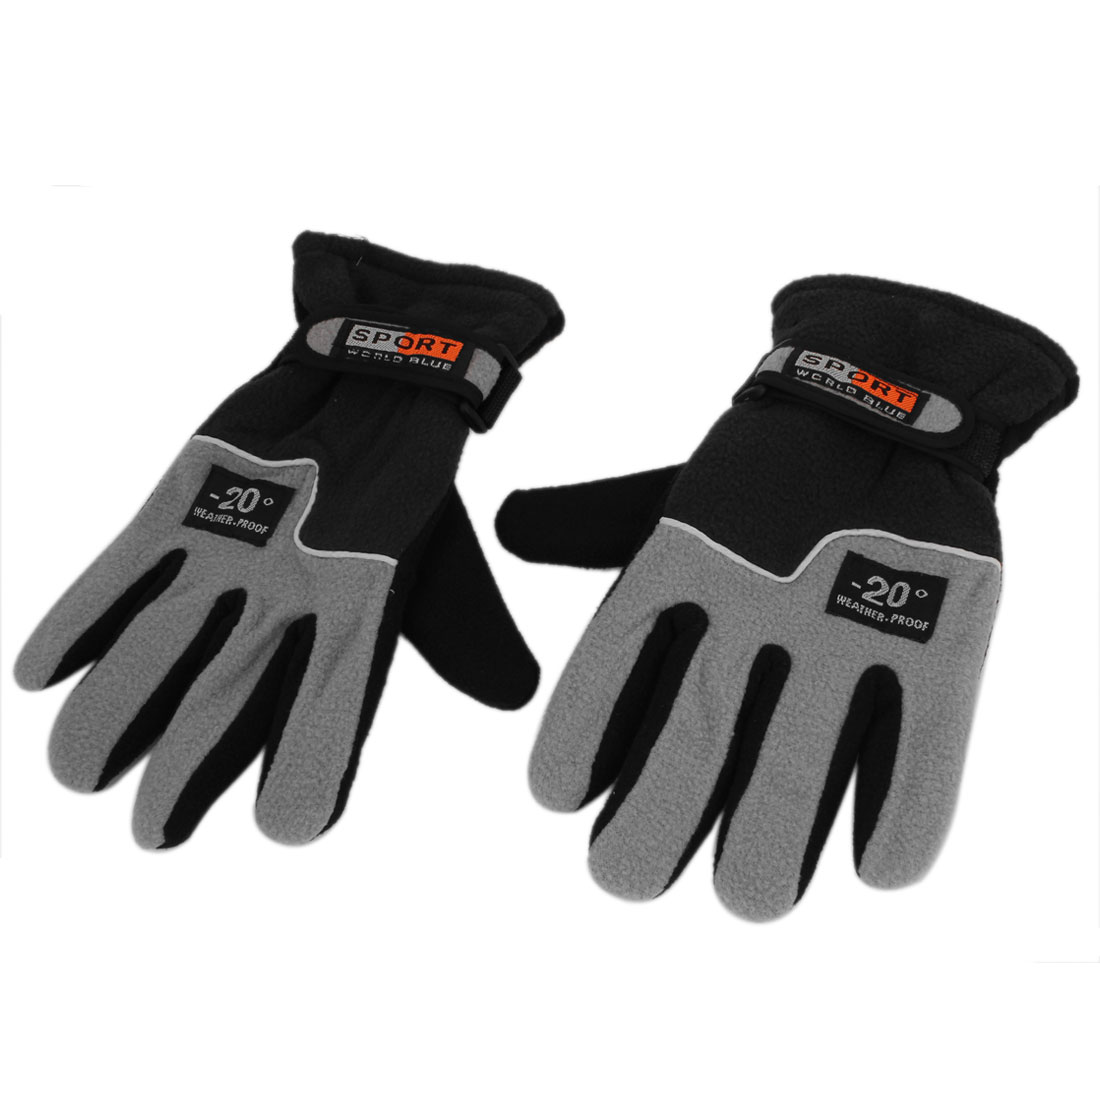 Unisex Winter Wear Cycling Skiing Hiking Fleece Thermal Insulation Gloves Gray Pair